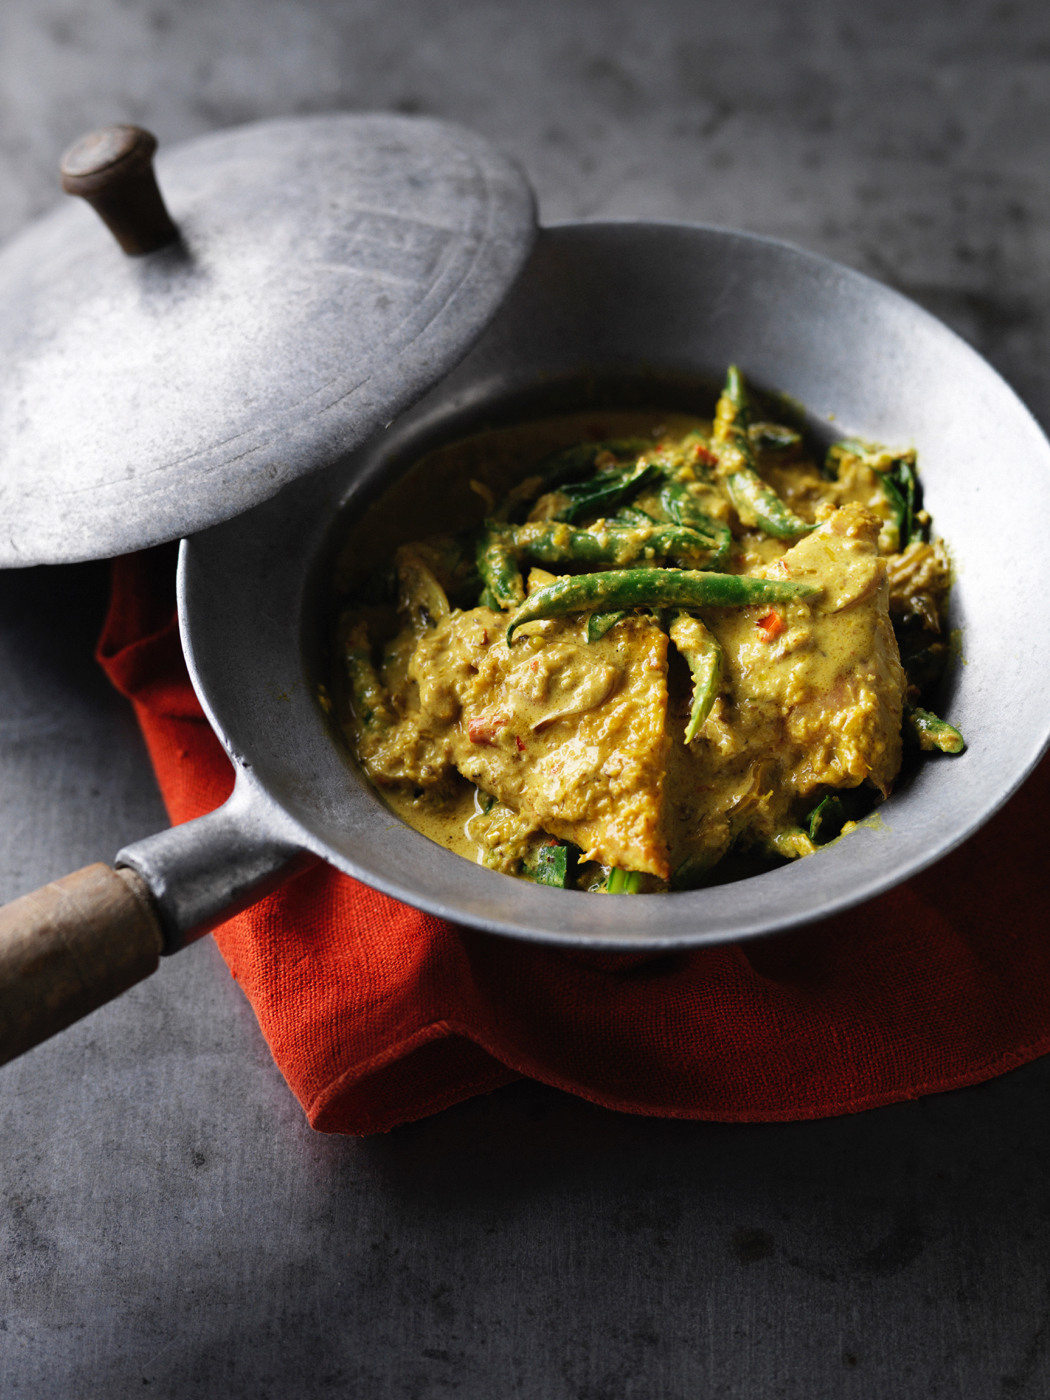 Barramundi Family Coconut Curry recipe from Surfing the Menu: Next Generation by Dan Churchill and Hayden Quinn